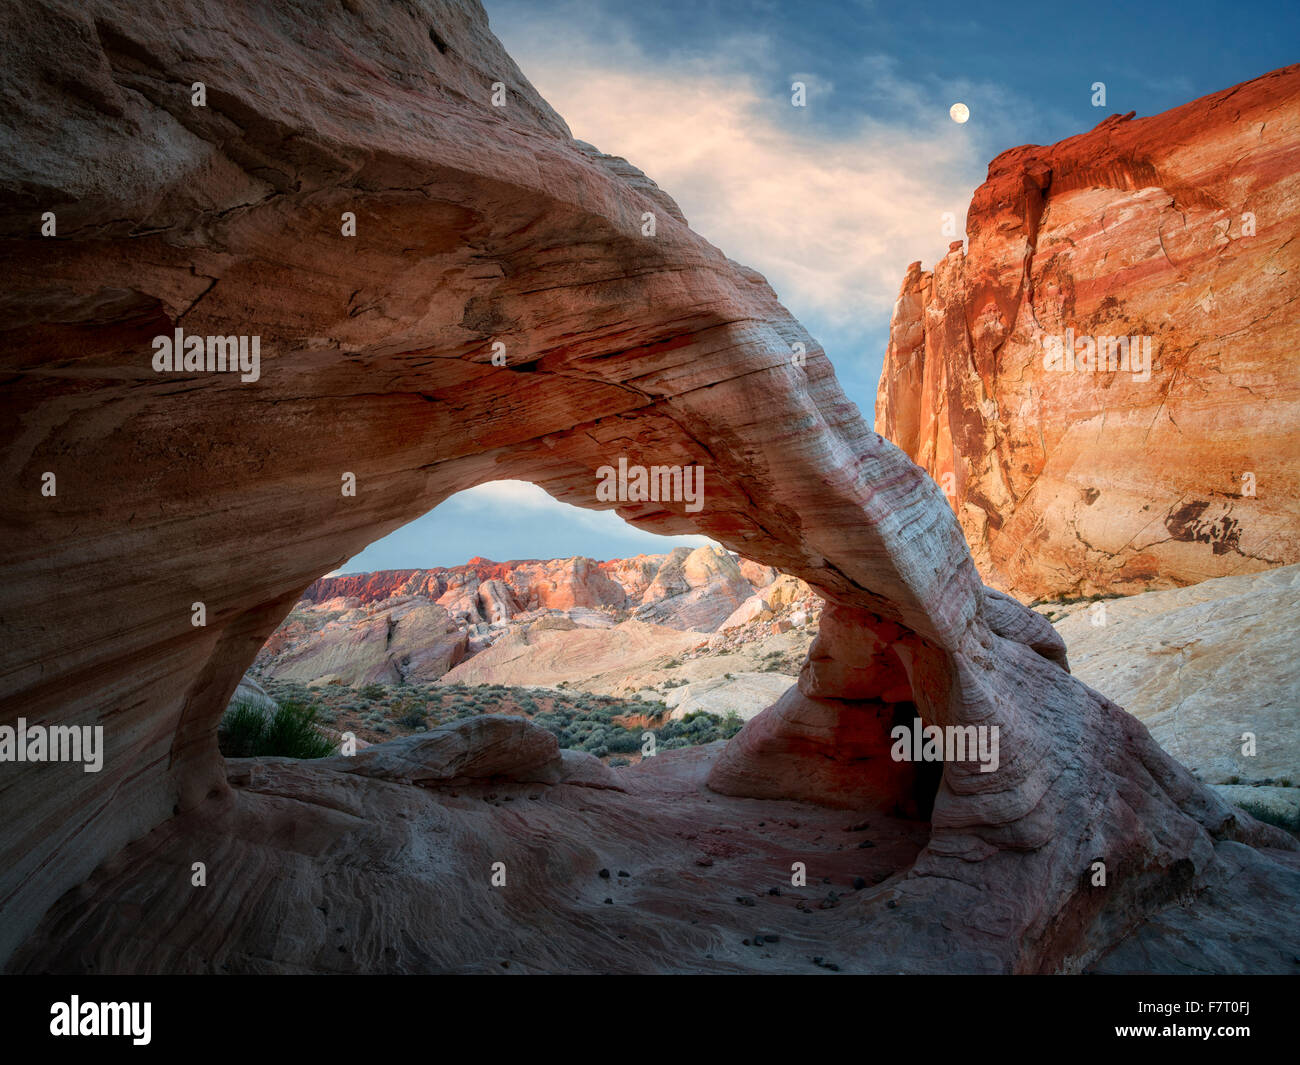 White Arch with moon. Valley of Fire State Park, Nevada - Stock Image